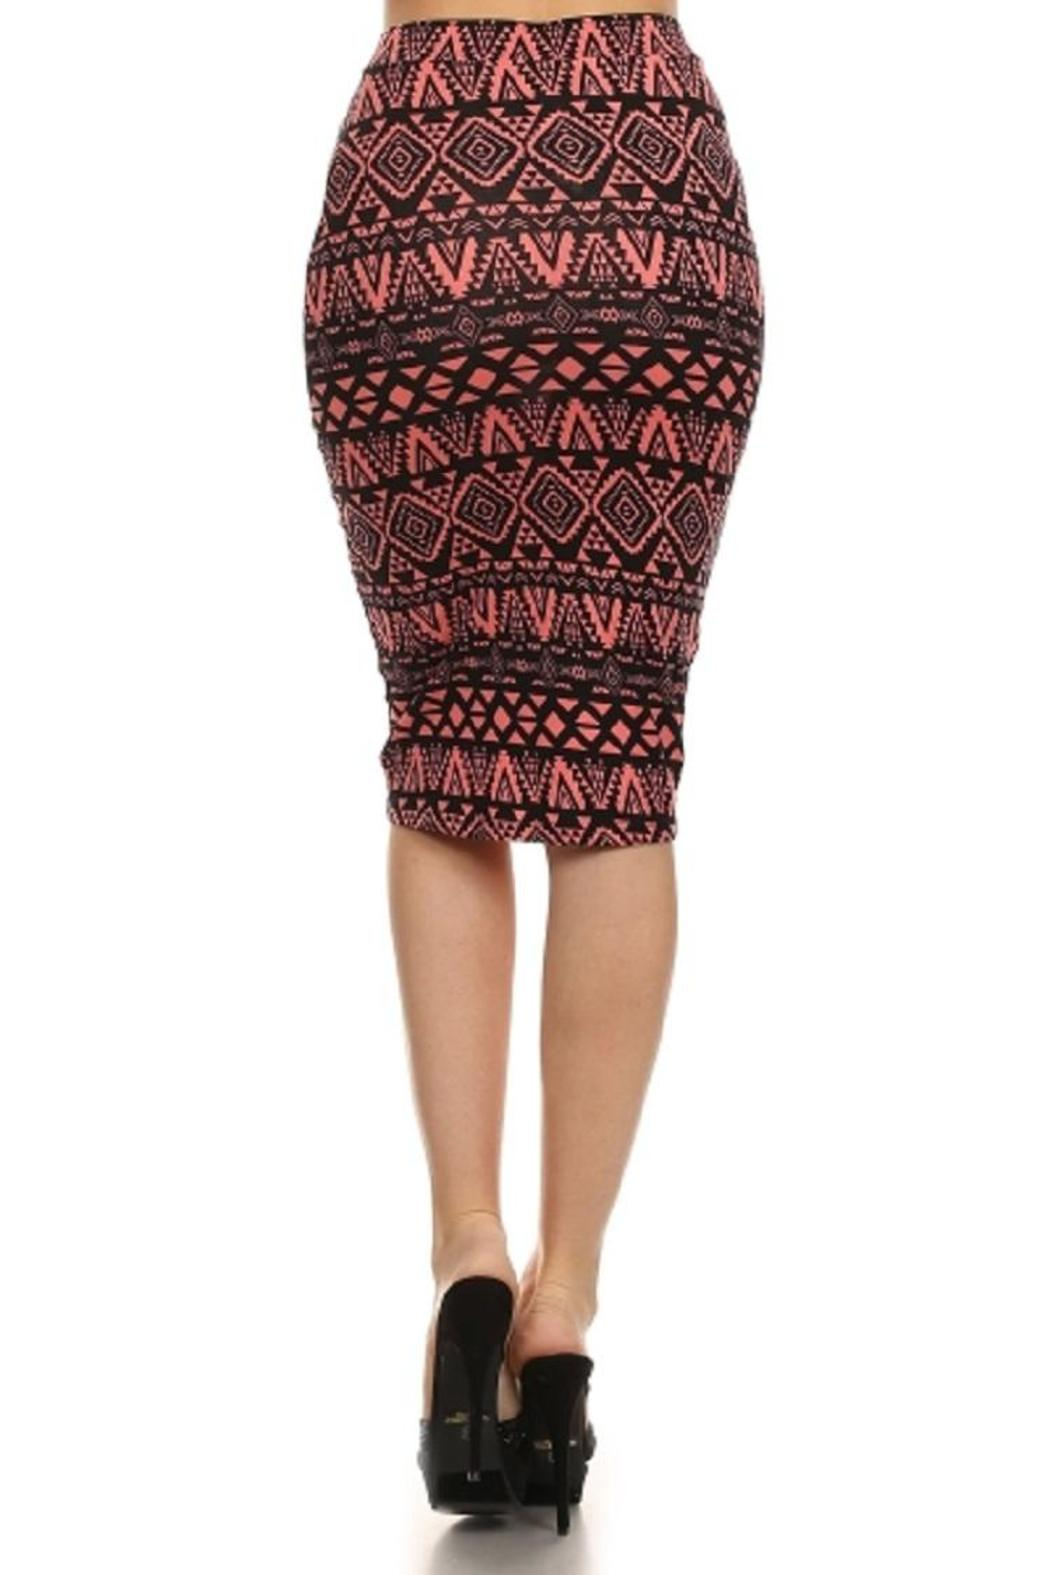 Brand new without tags Lularoe Cassie Skirt XL Kind of Aztec, patterned Green and black Listing is for skirt only. Lularoe Azure XS Skirt Navy gold red tan Aztec. $ 0 bids. NWT New LuLaRoe Azure Skirt Medium Aztec Design. $ Buy It Now. or Best Offer. This skirt is 95% Polyester / .